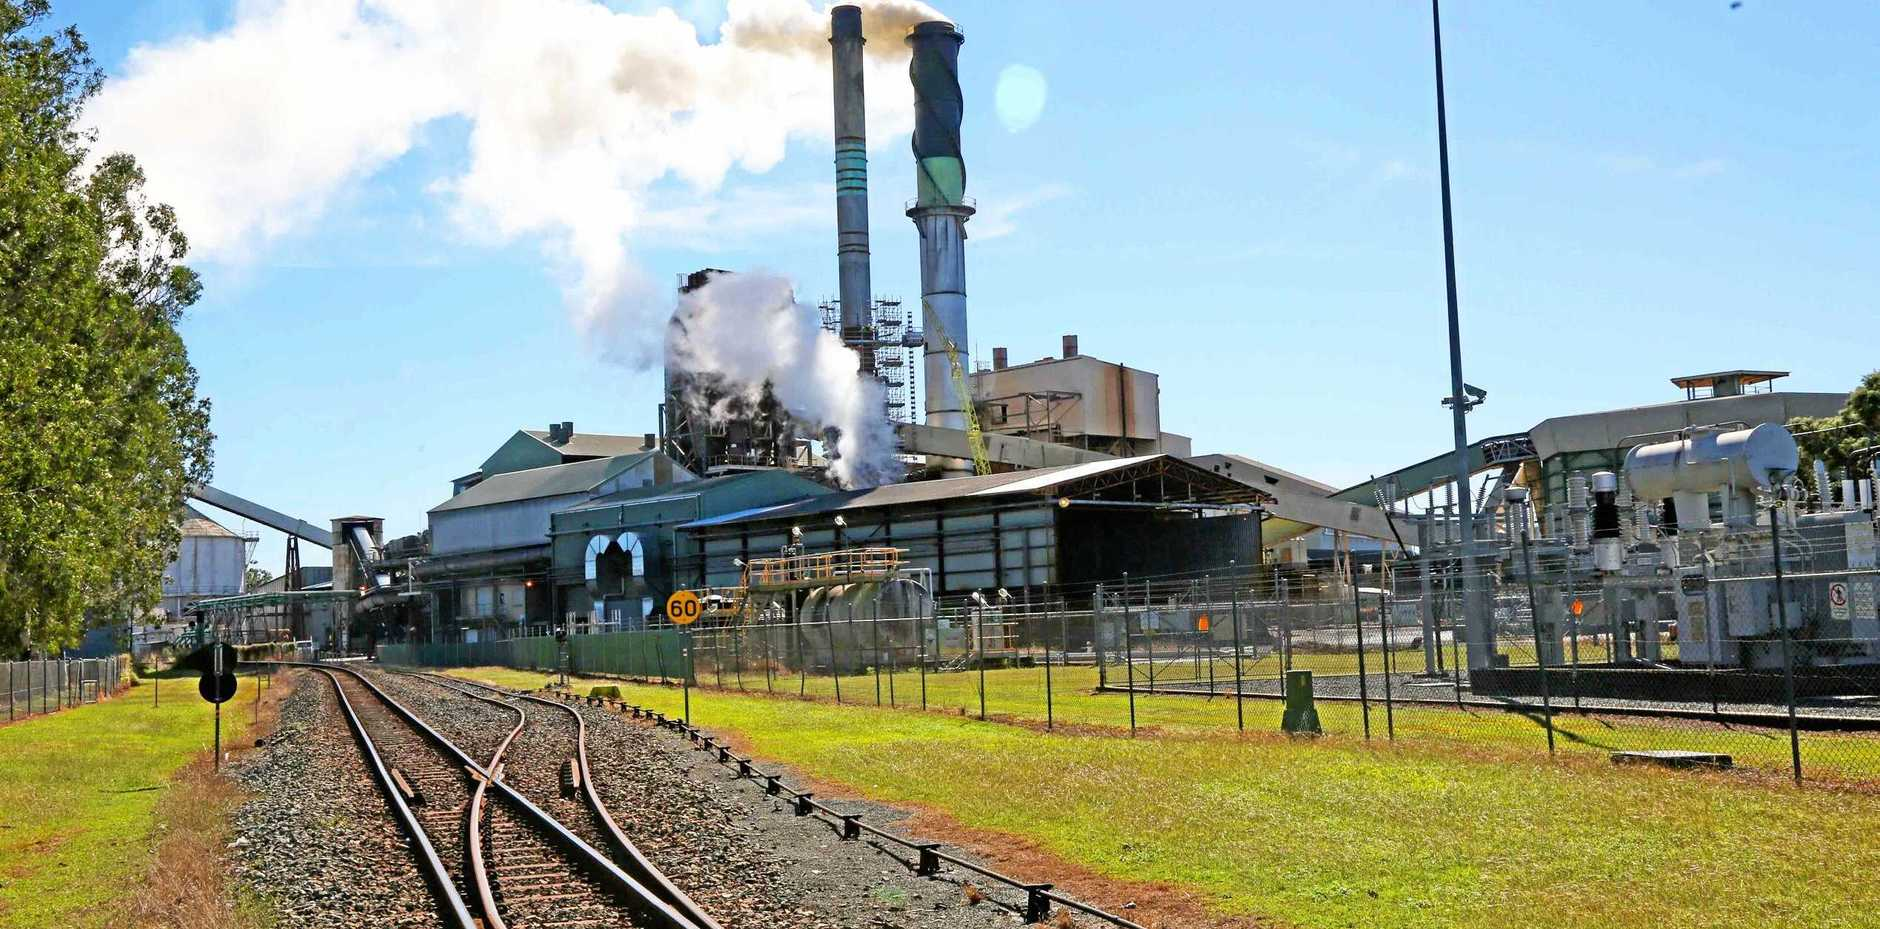 HALT: Cane crushing stopped at Proserpine mill due to significant rainfall.